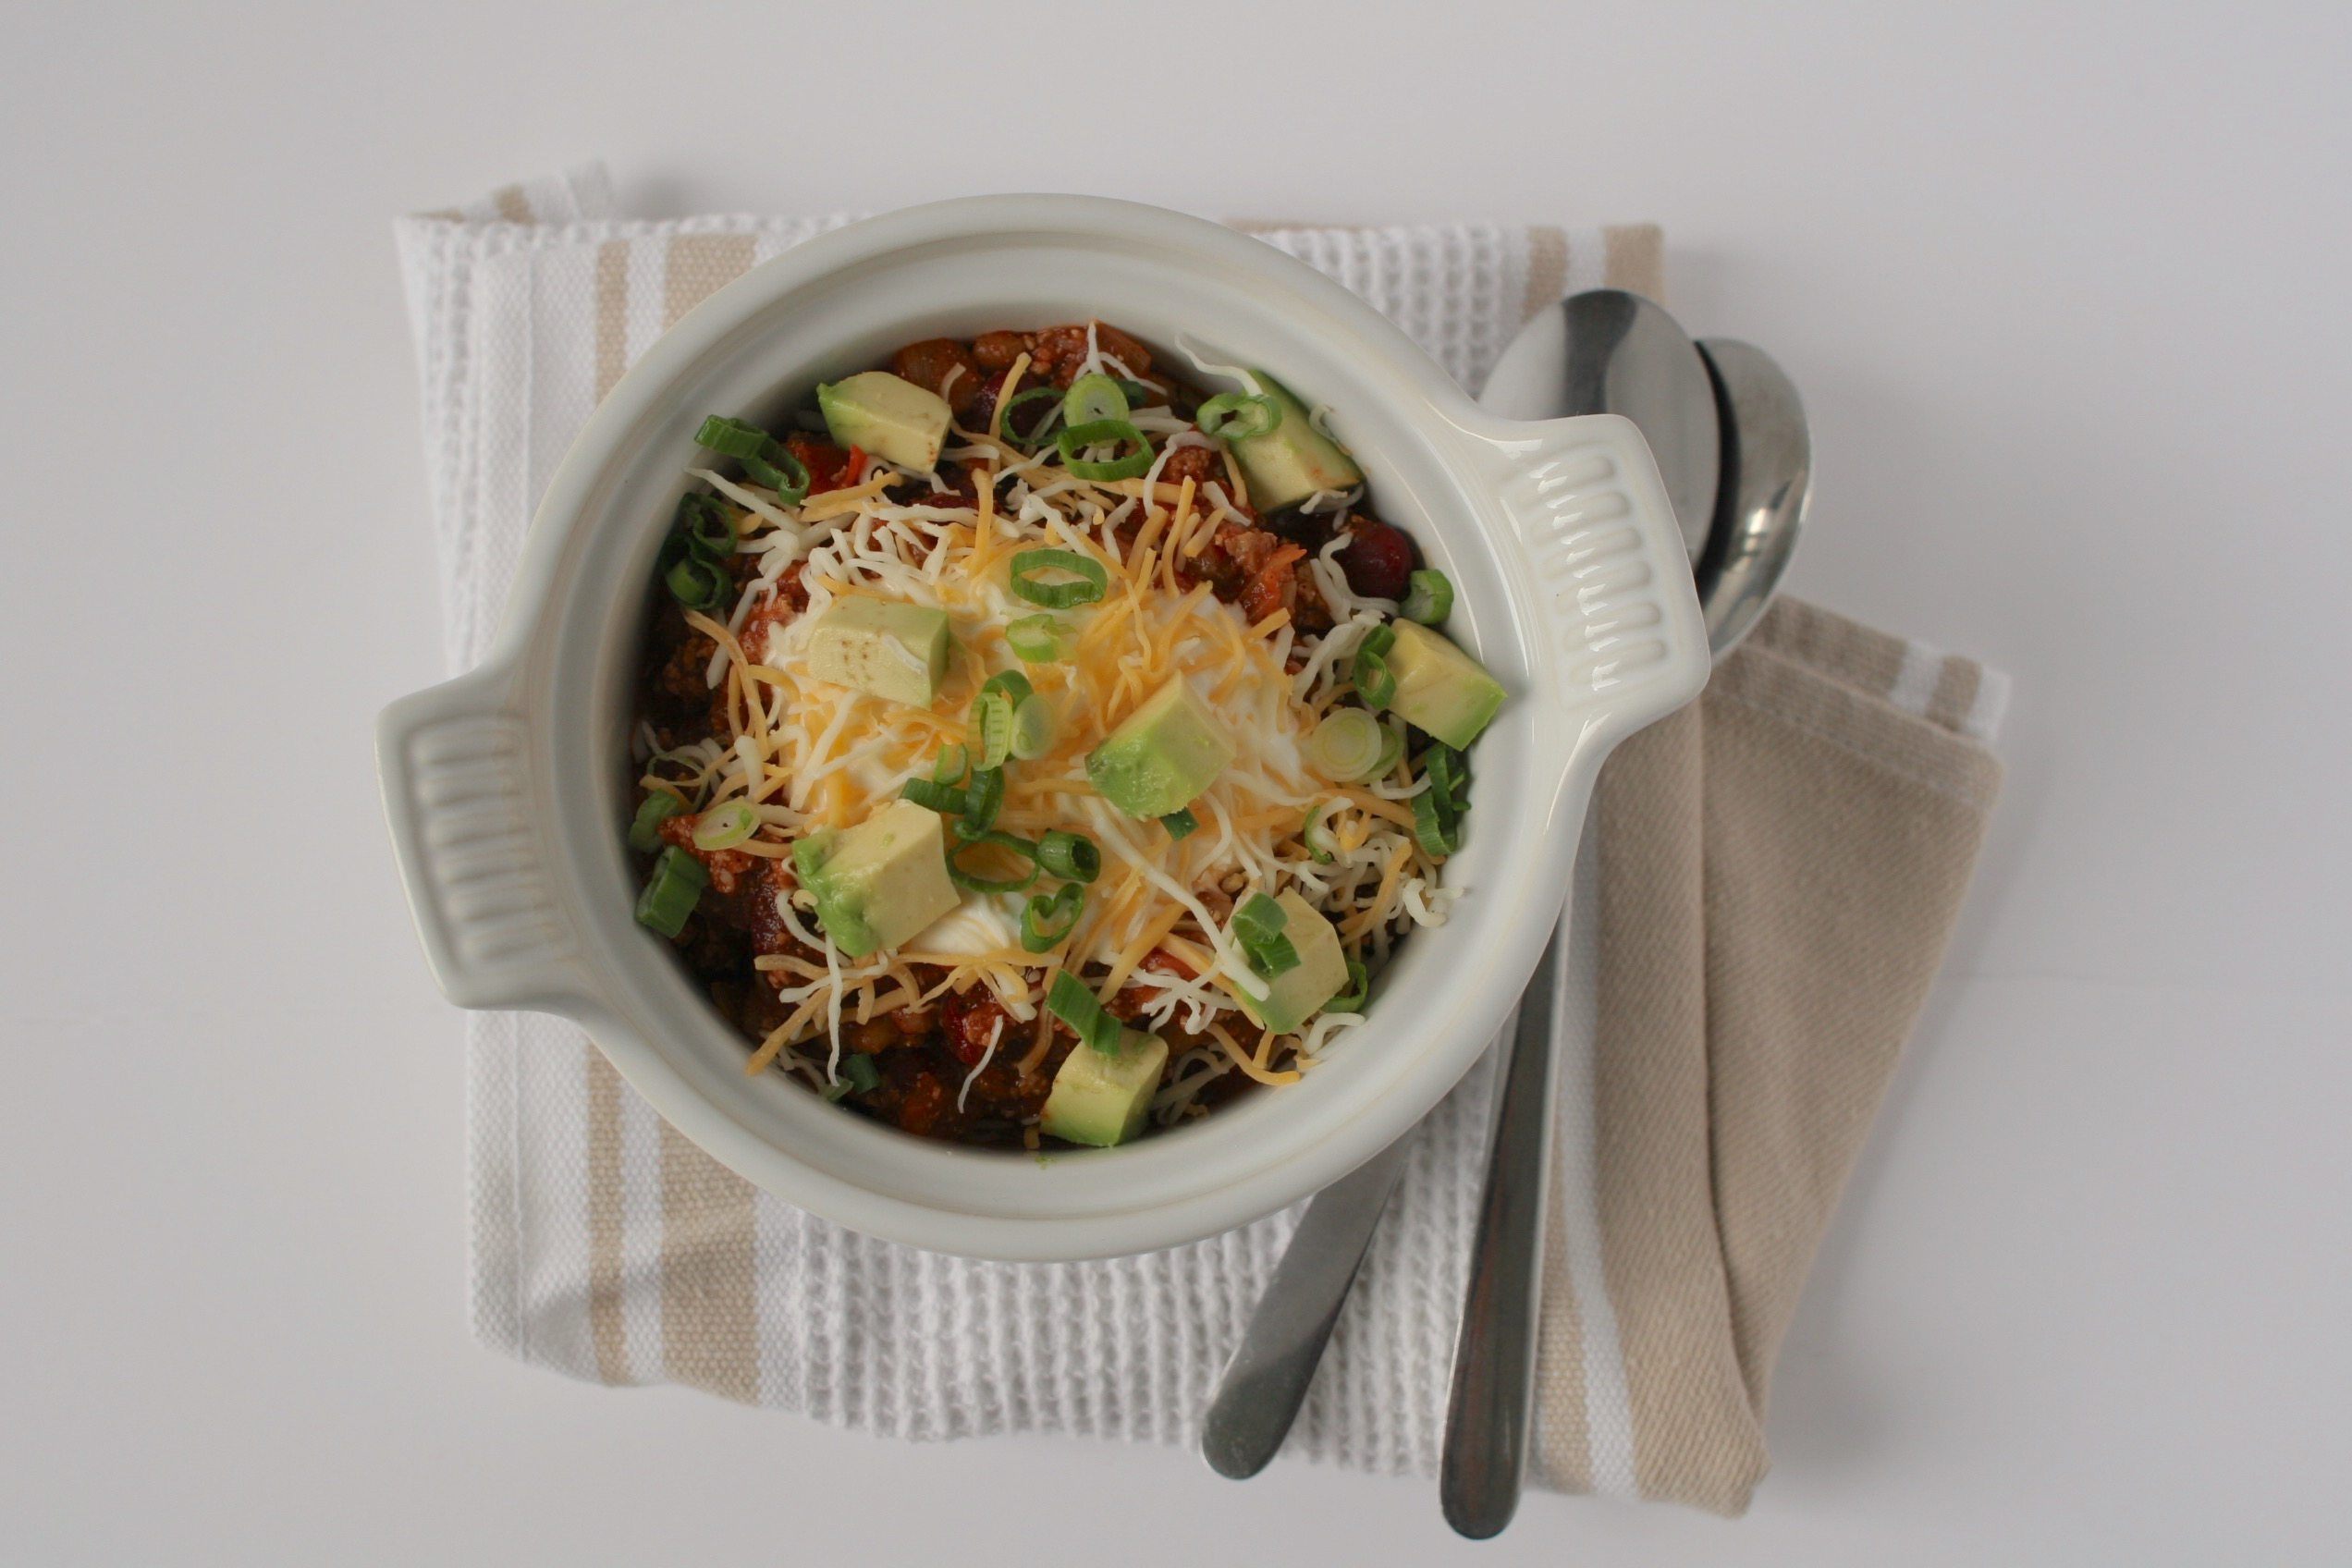 vegetarian chili.alert1 medical alert systems